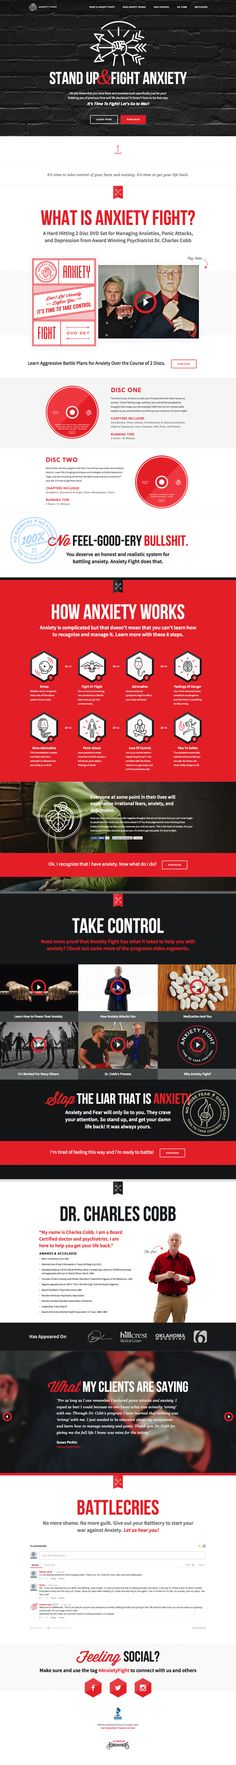 Fantastic design. | Anxiety Fight by Forefathers Group, via Behance